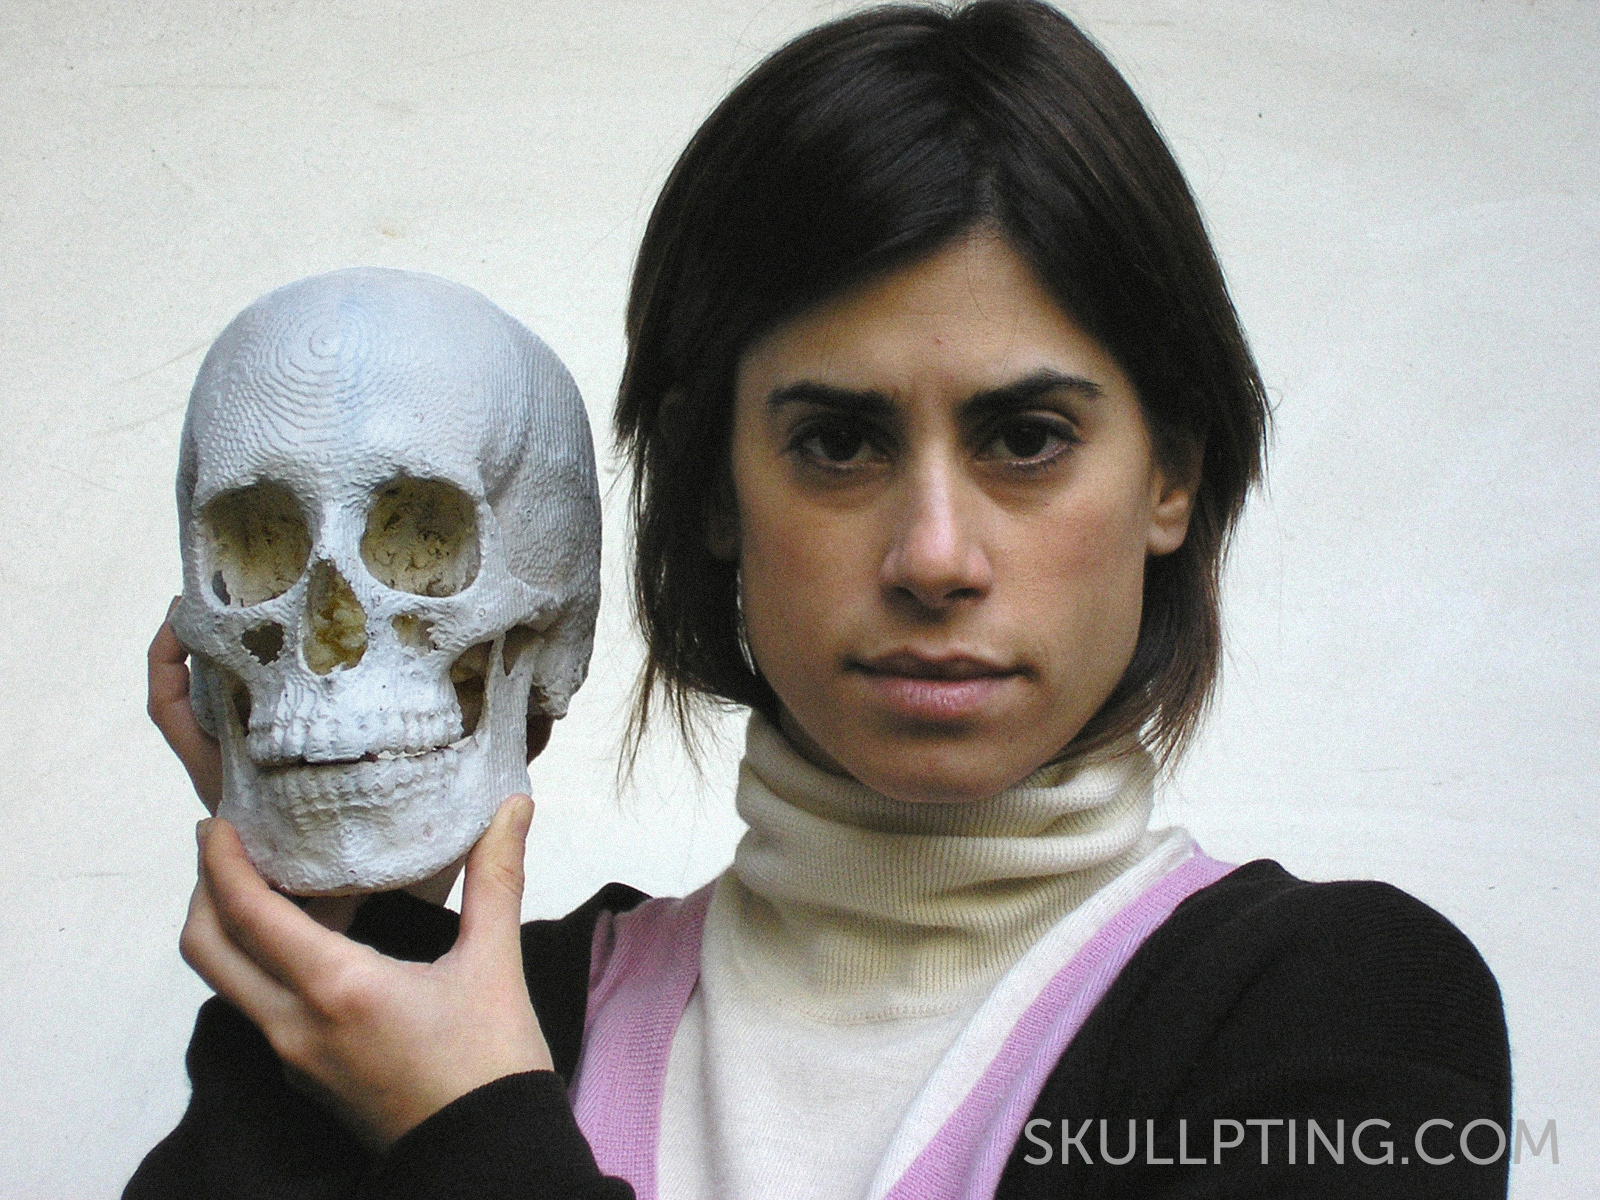 The artist with her 3D-printed skull.